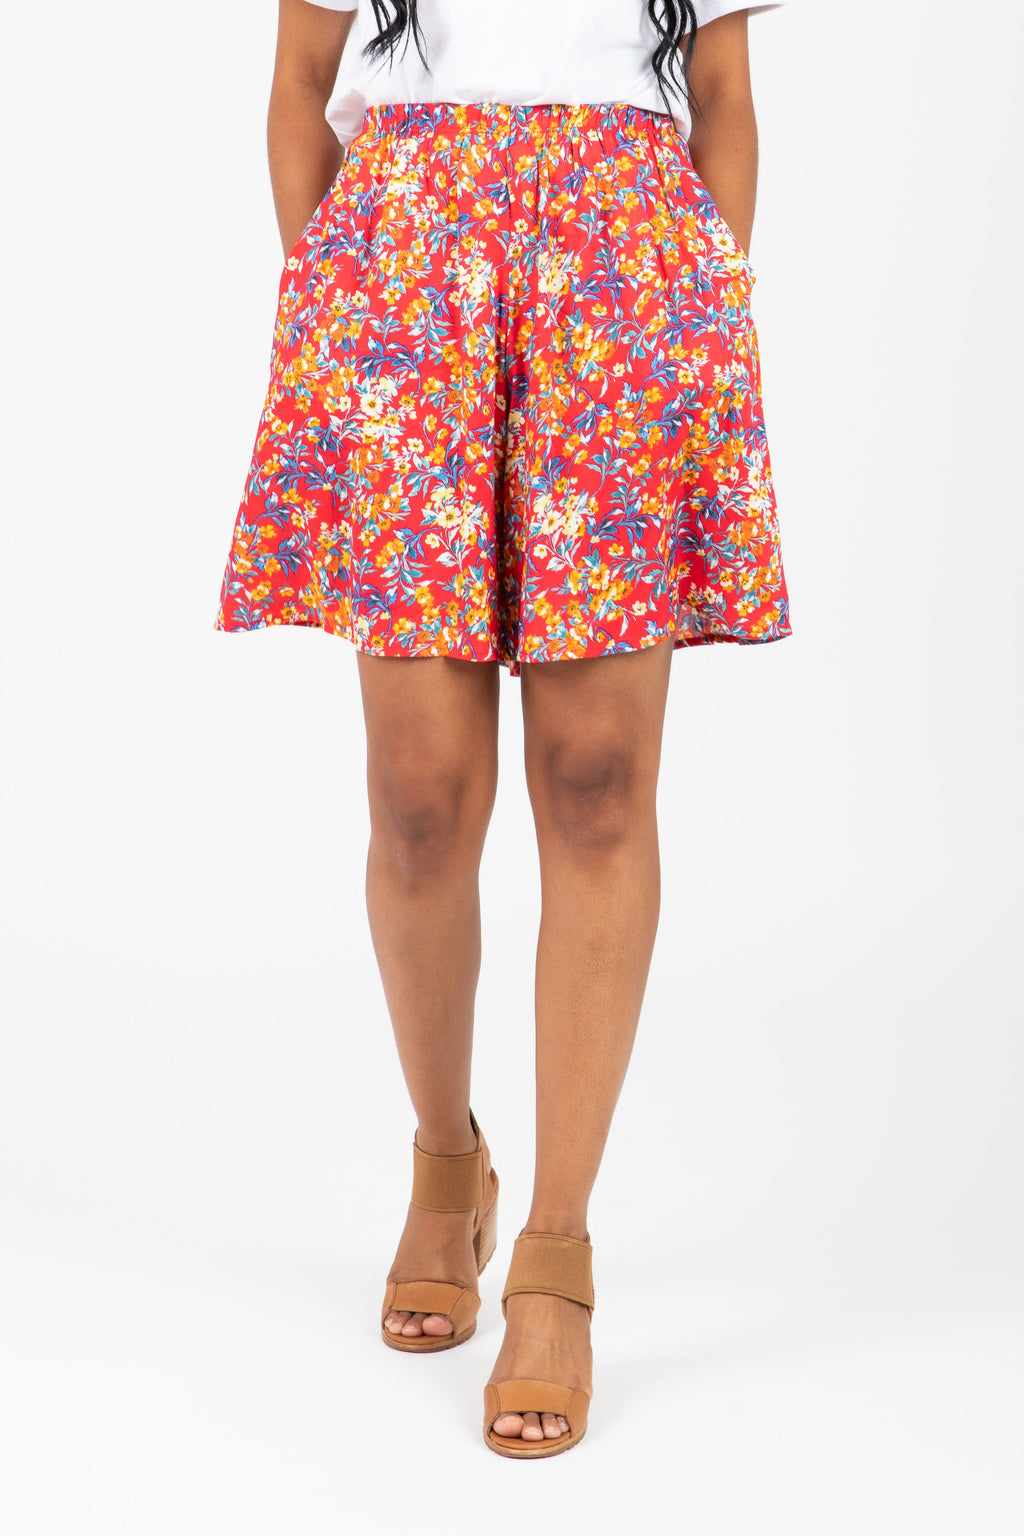 The Kisses Floral Casual Shorts in Red